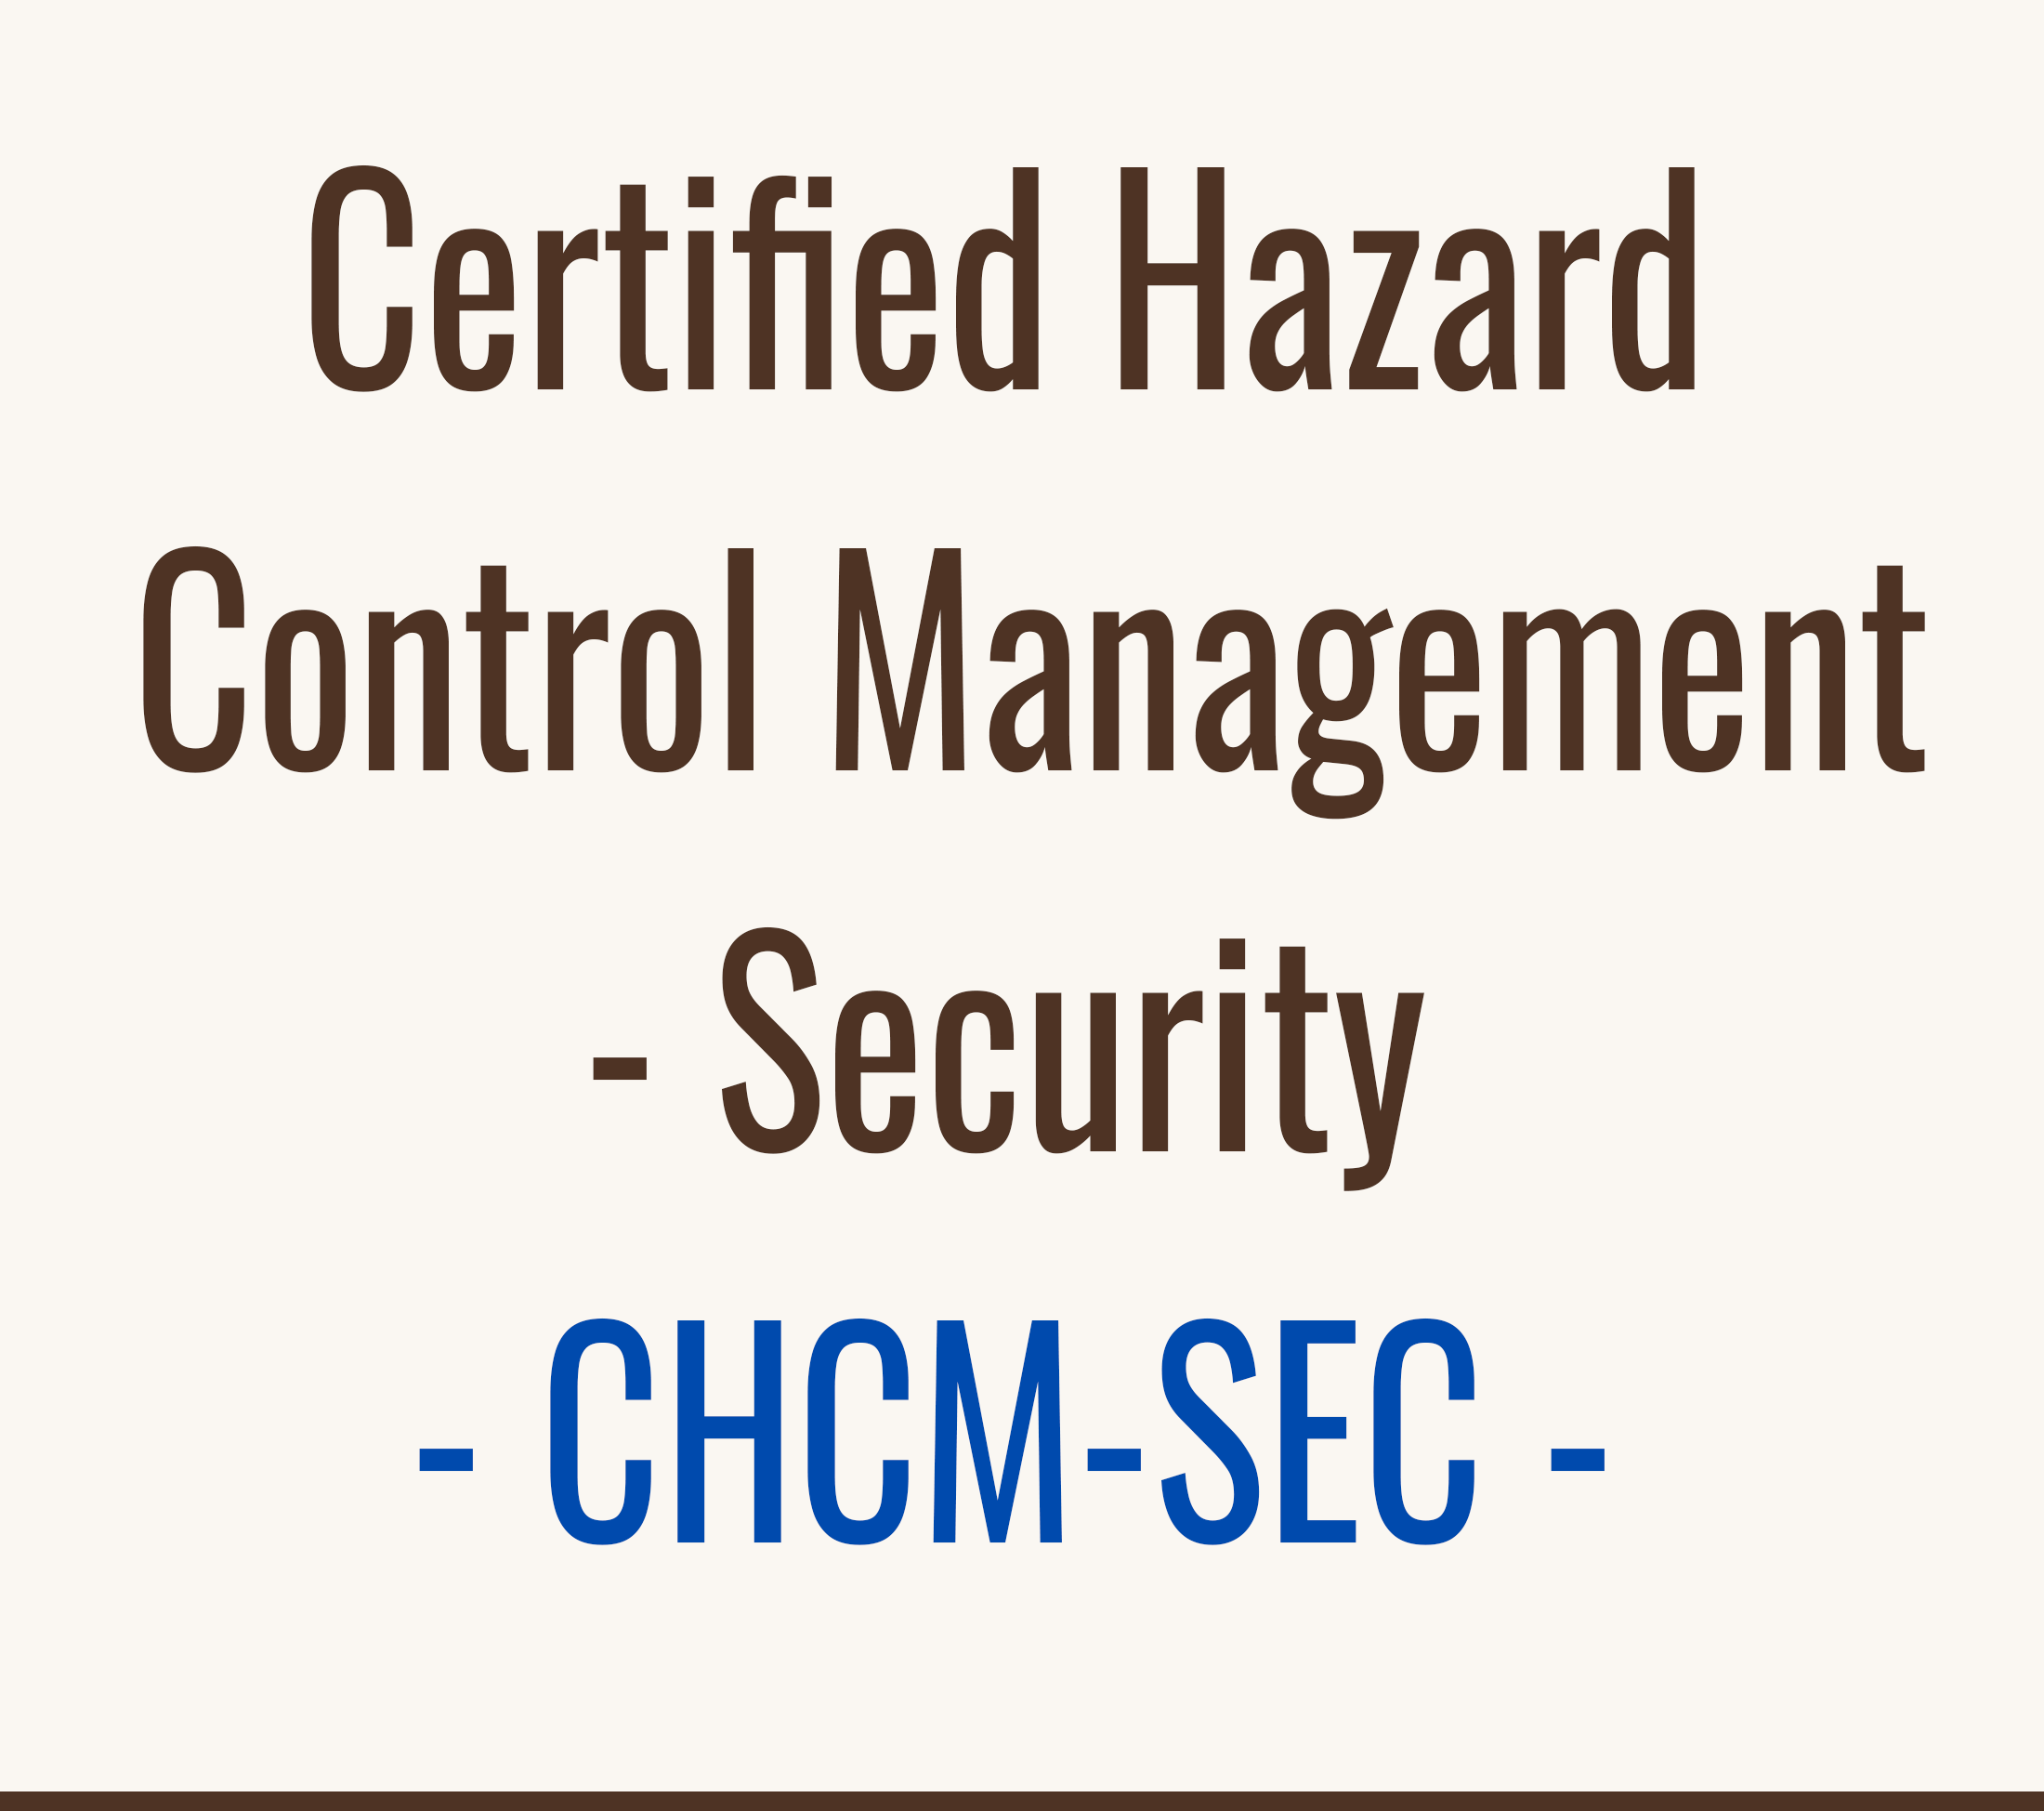 Certified Hazard Control Manager - Security